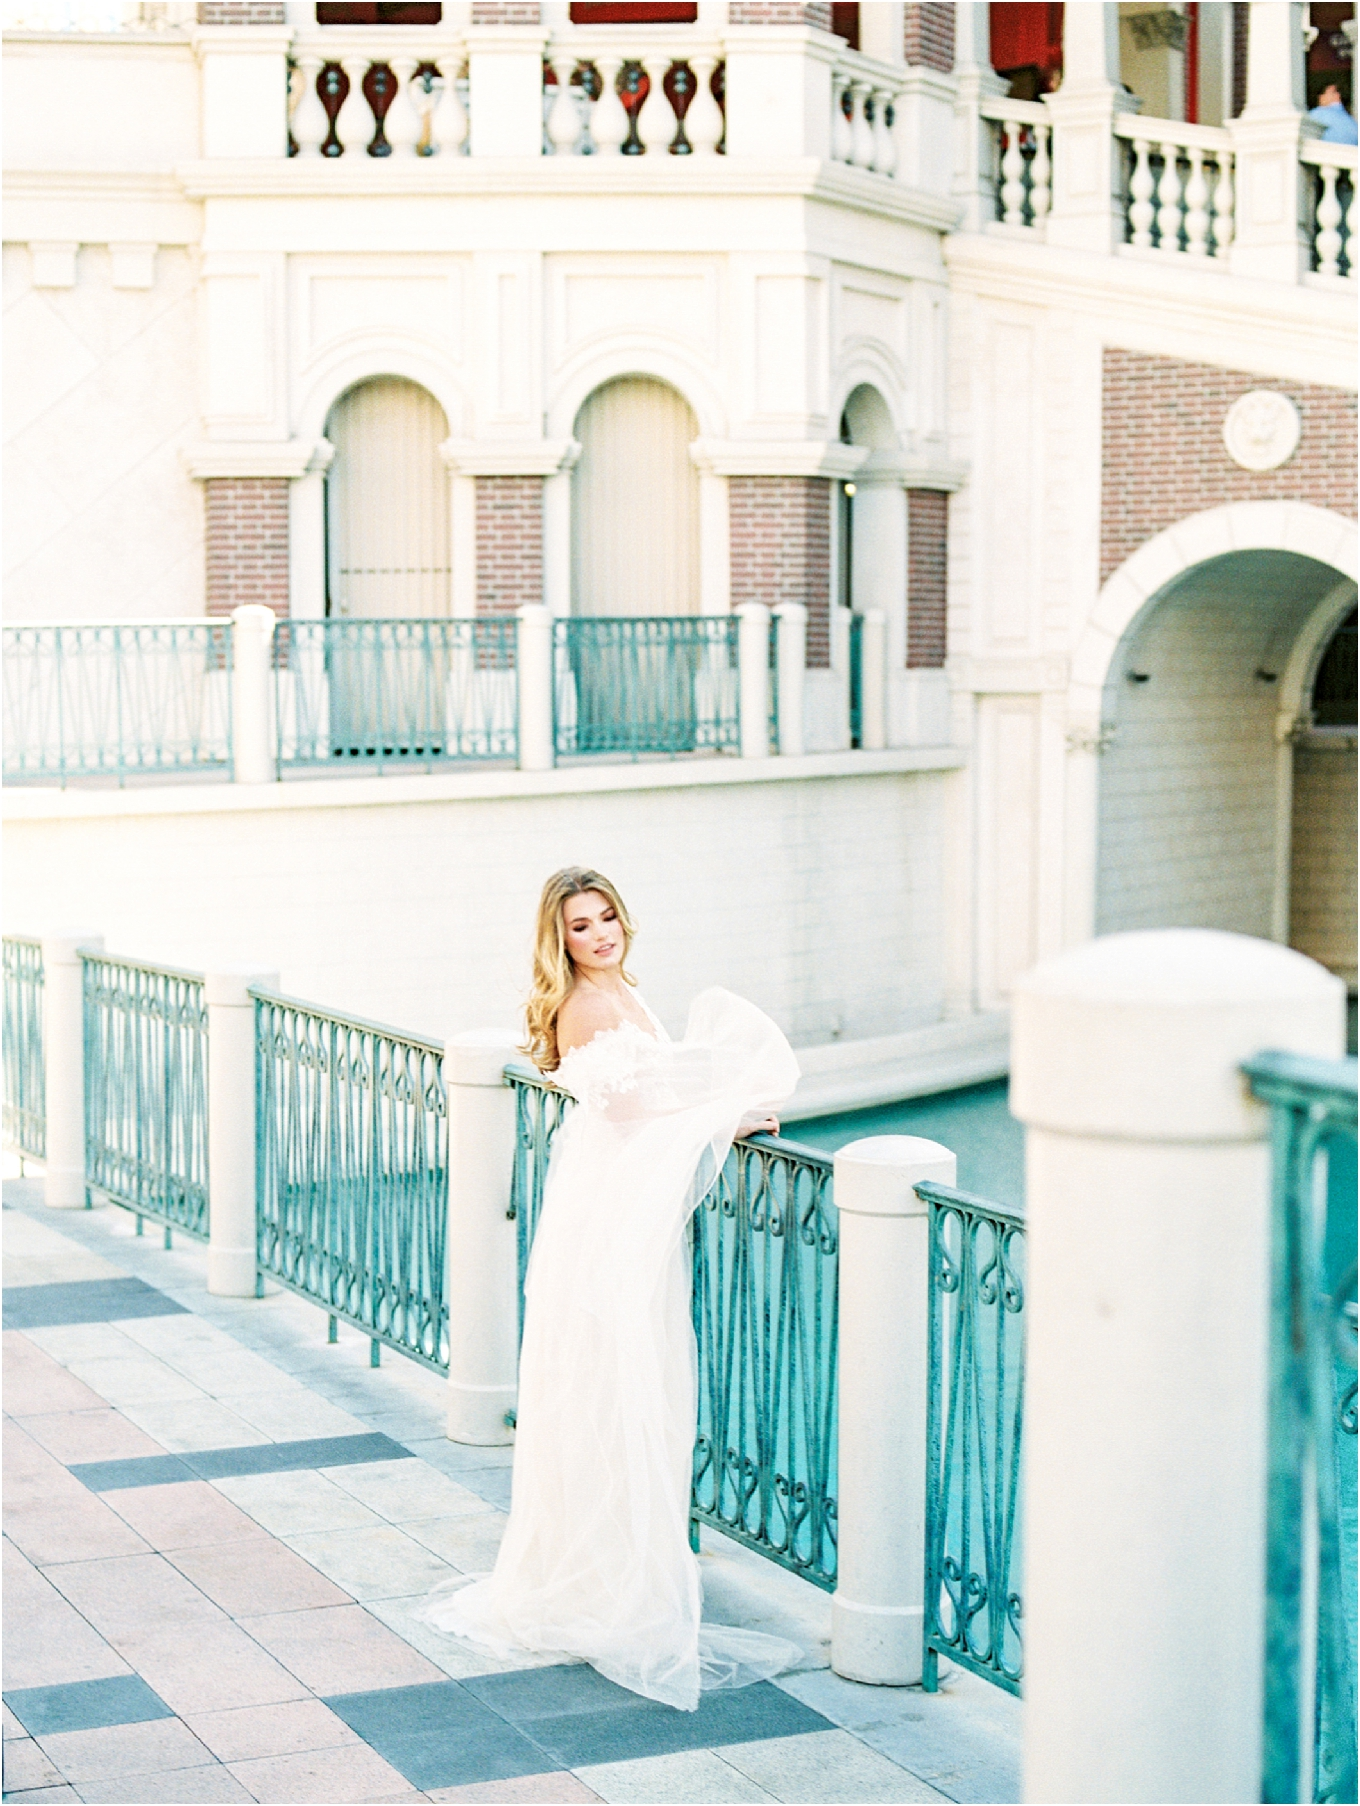 Lisa Silva Photography- Ponte Vedra Beach, St. Augustine and Jacksonville, Florida Fine Art Film Wedding and Boudoir Photography- Fine Art Film Bridal Editorial at the Venitian, Las Vegas_0006.jpg